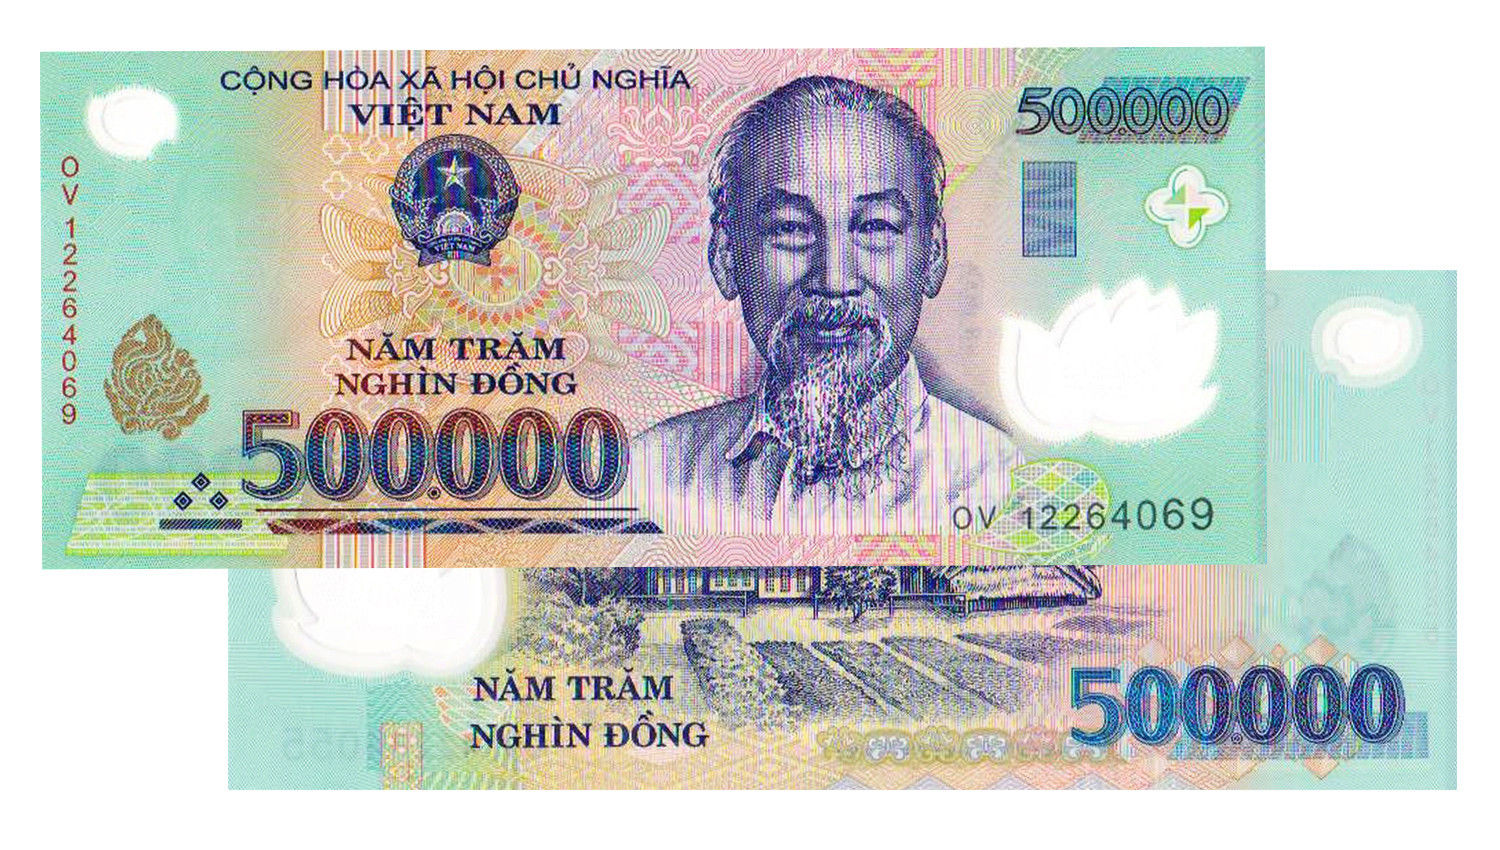 Details about 5,000,000 VIETNAM DONG (10x 500,000) BANK NOTE VIETNAMESE  CURRENCY UNCIRCULATED